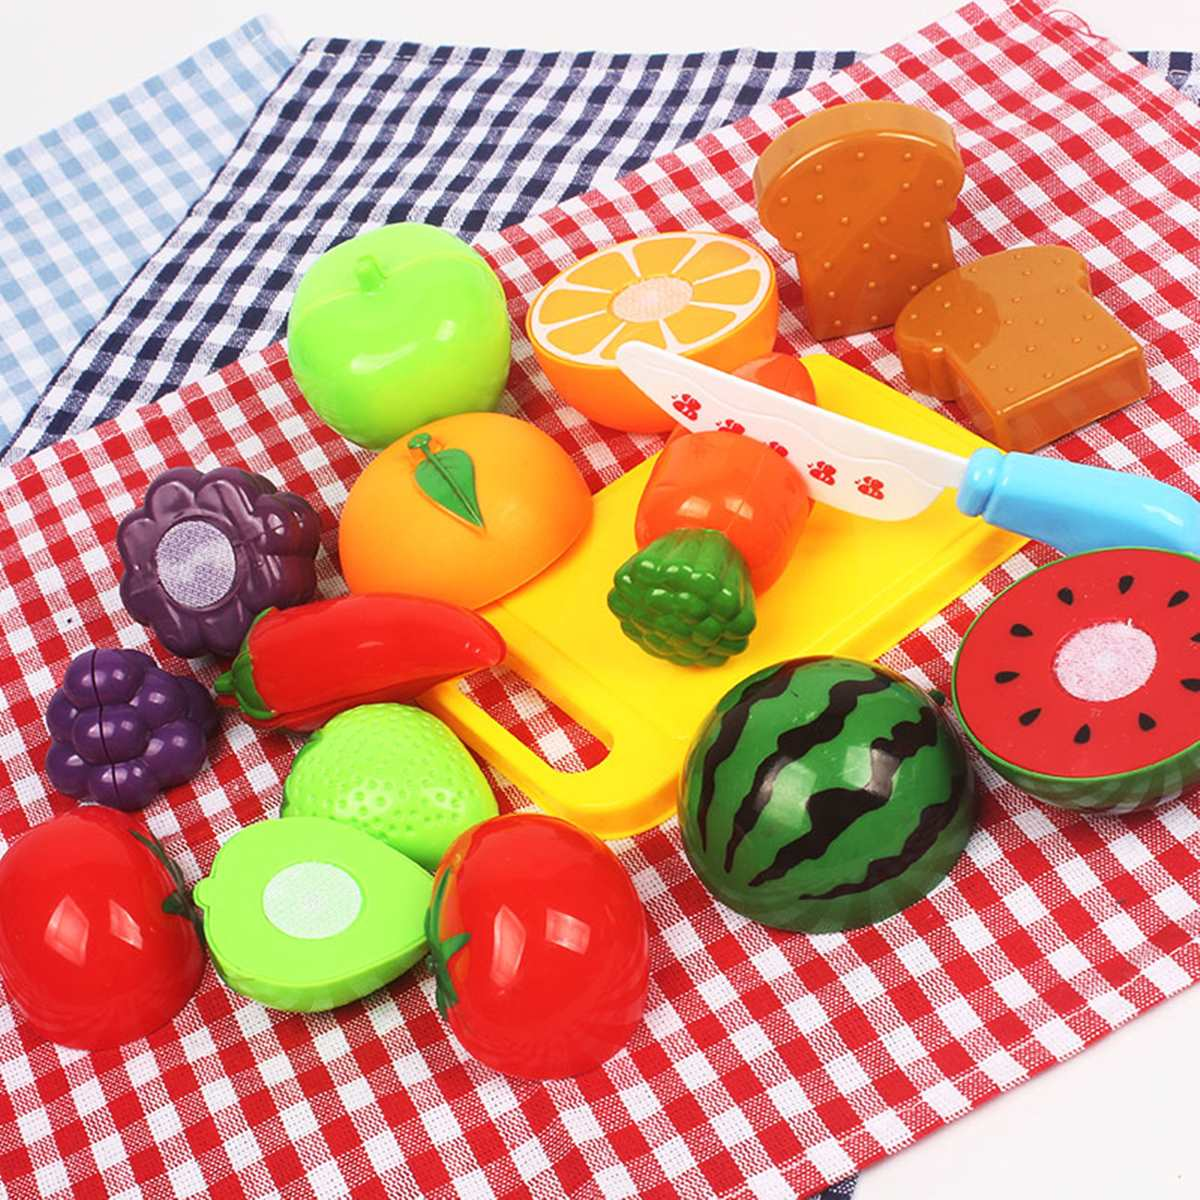 20pcs/set Kids Children Toddler Pretend Role Play Fruit Kitchen Cooking Cutting Toys Educational Toys Gift For Children Adult